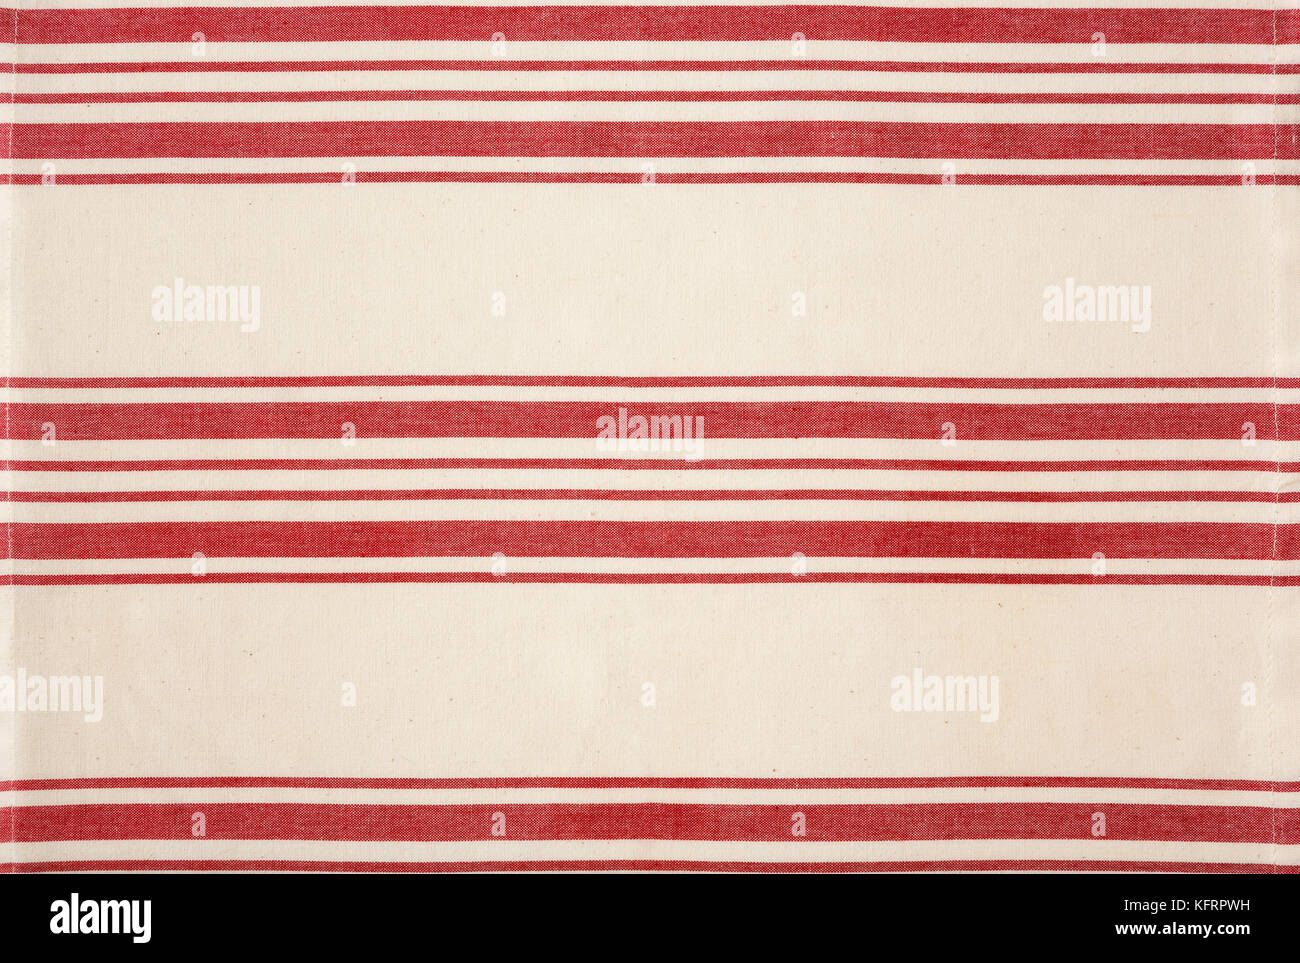 Traditional red and white striped cotton fabric kitchen bistro style tea towel tablecloth. Simple, classic, rustic Stock Photo